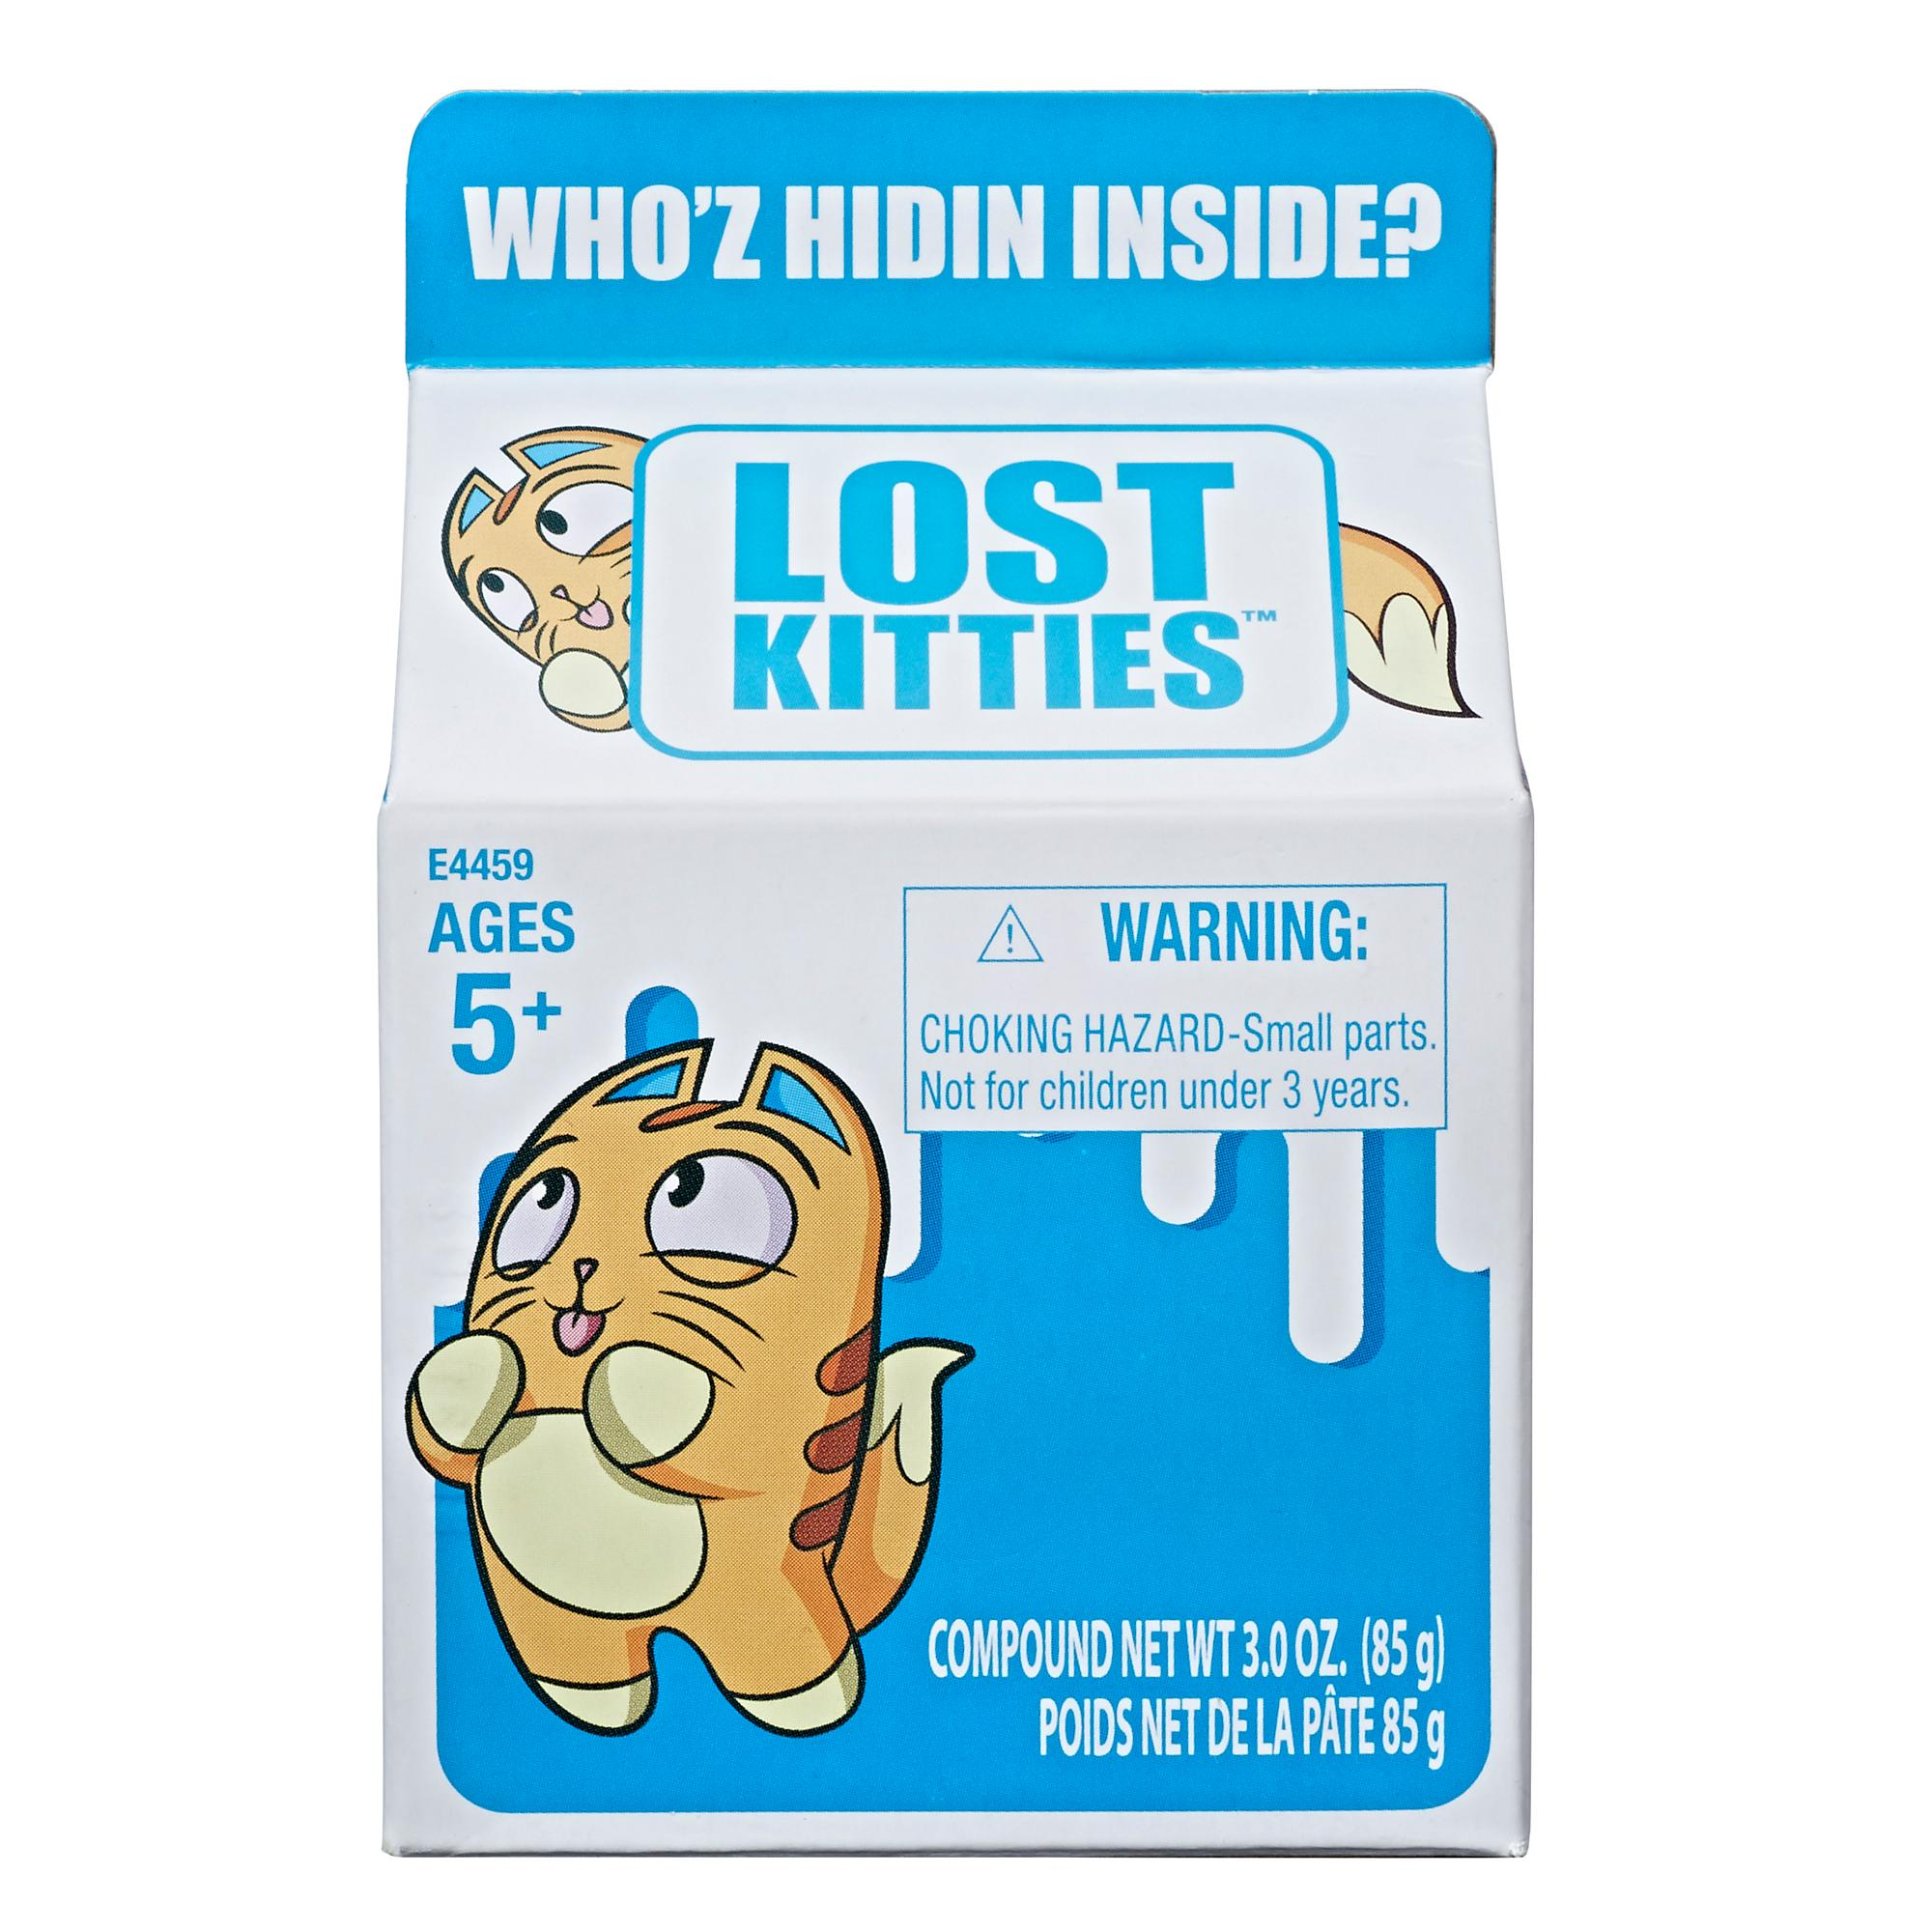 LOST KITTIES BLIND BOX